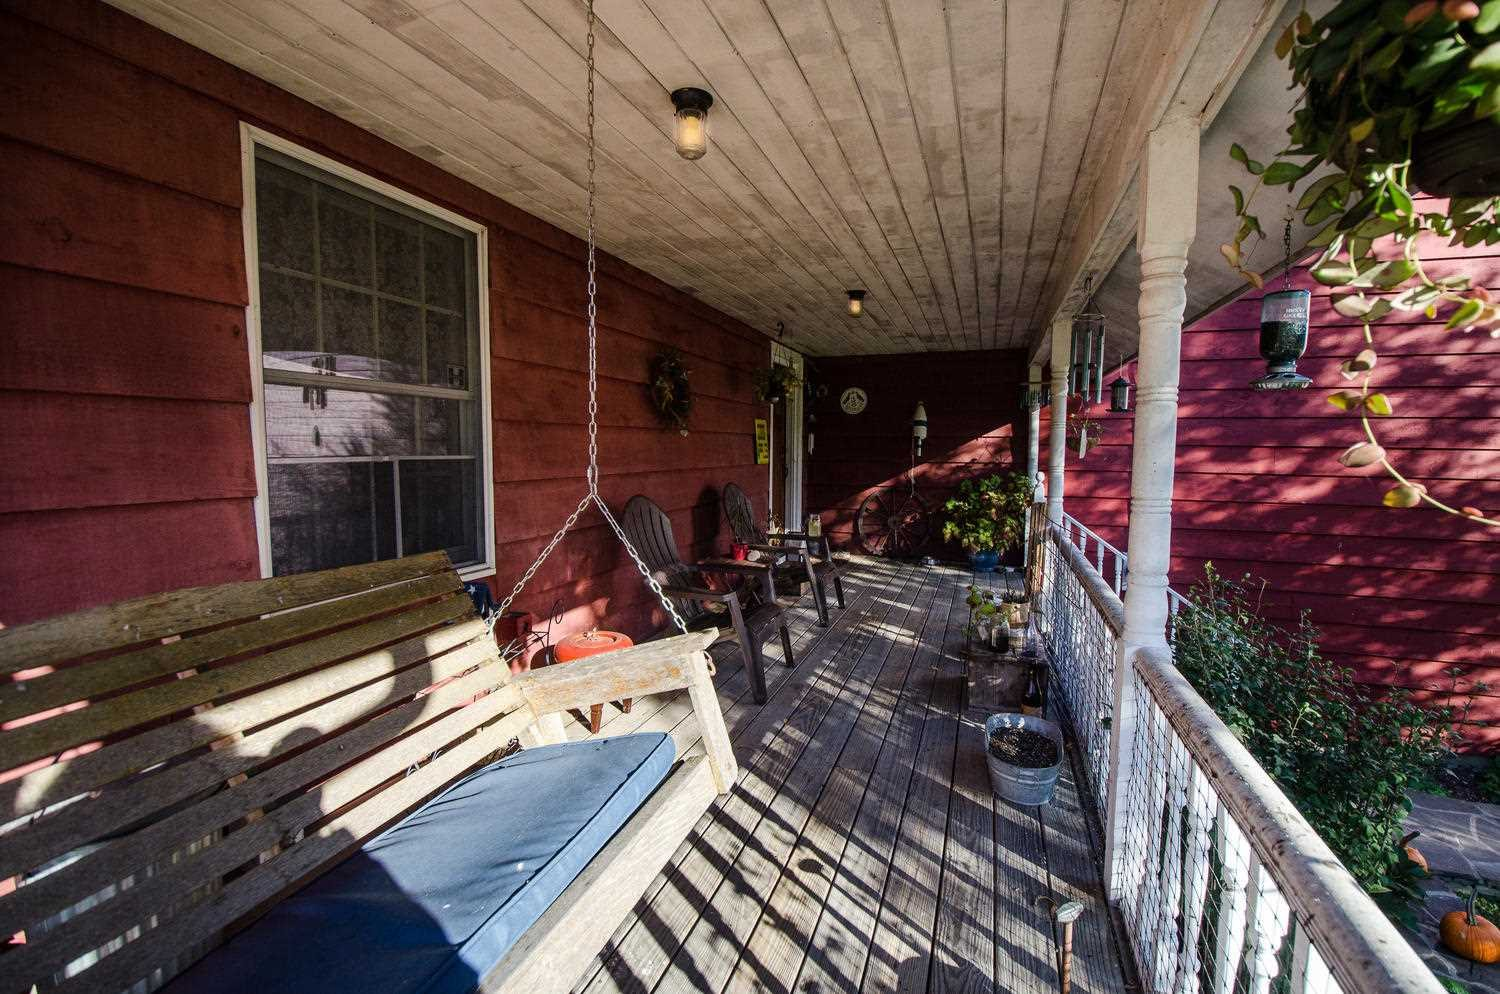 Additional photo for property listing at 344 HULL AVENUE 344 HULL AVENUE Plattekill, New York 12515 United States